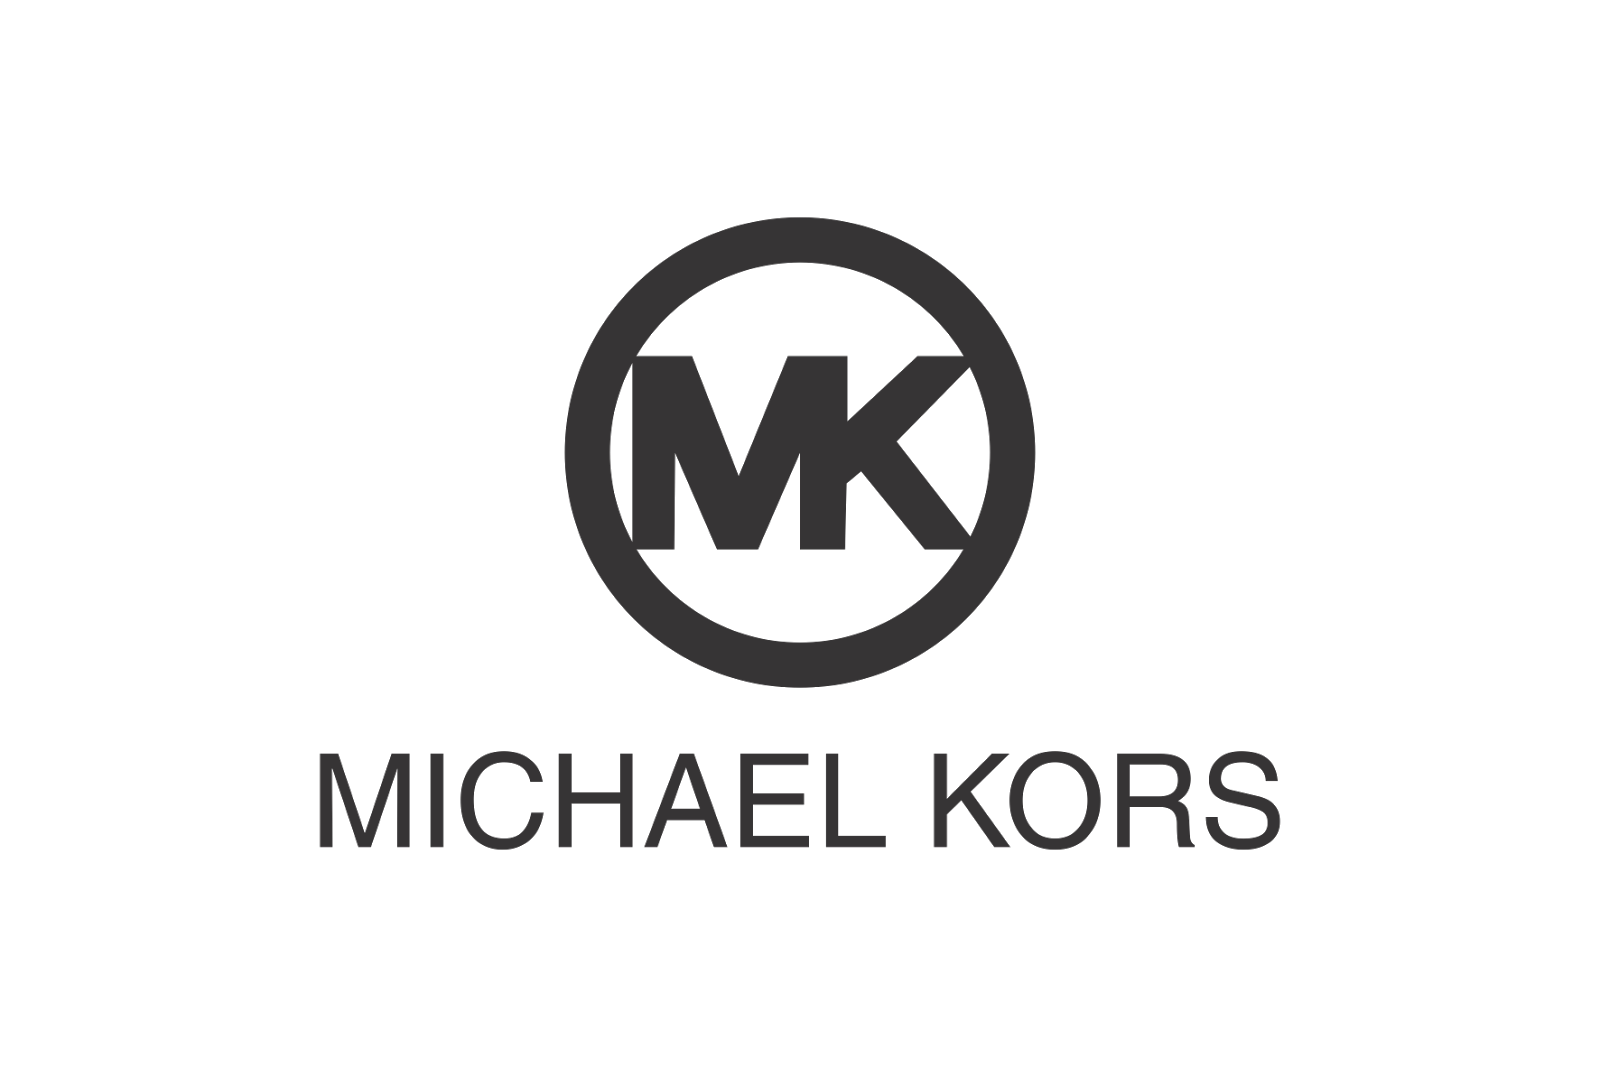 Michael Kors Logo Wallpaper